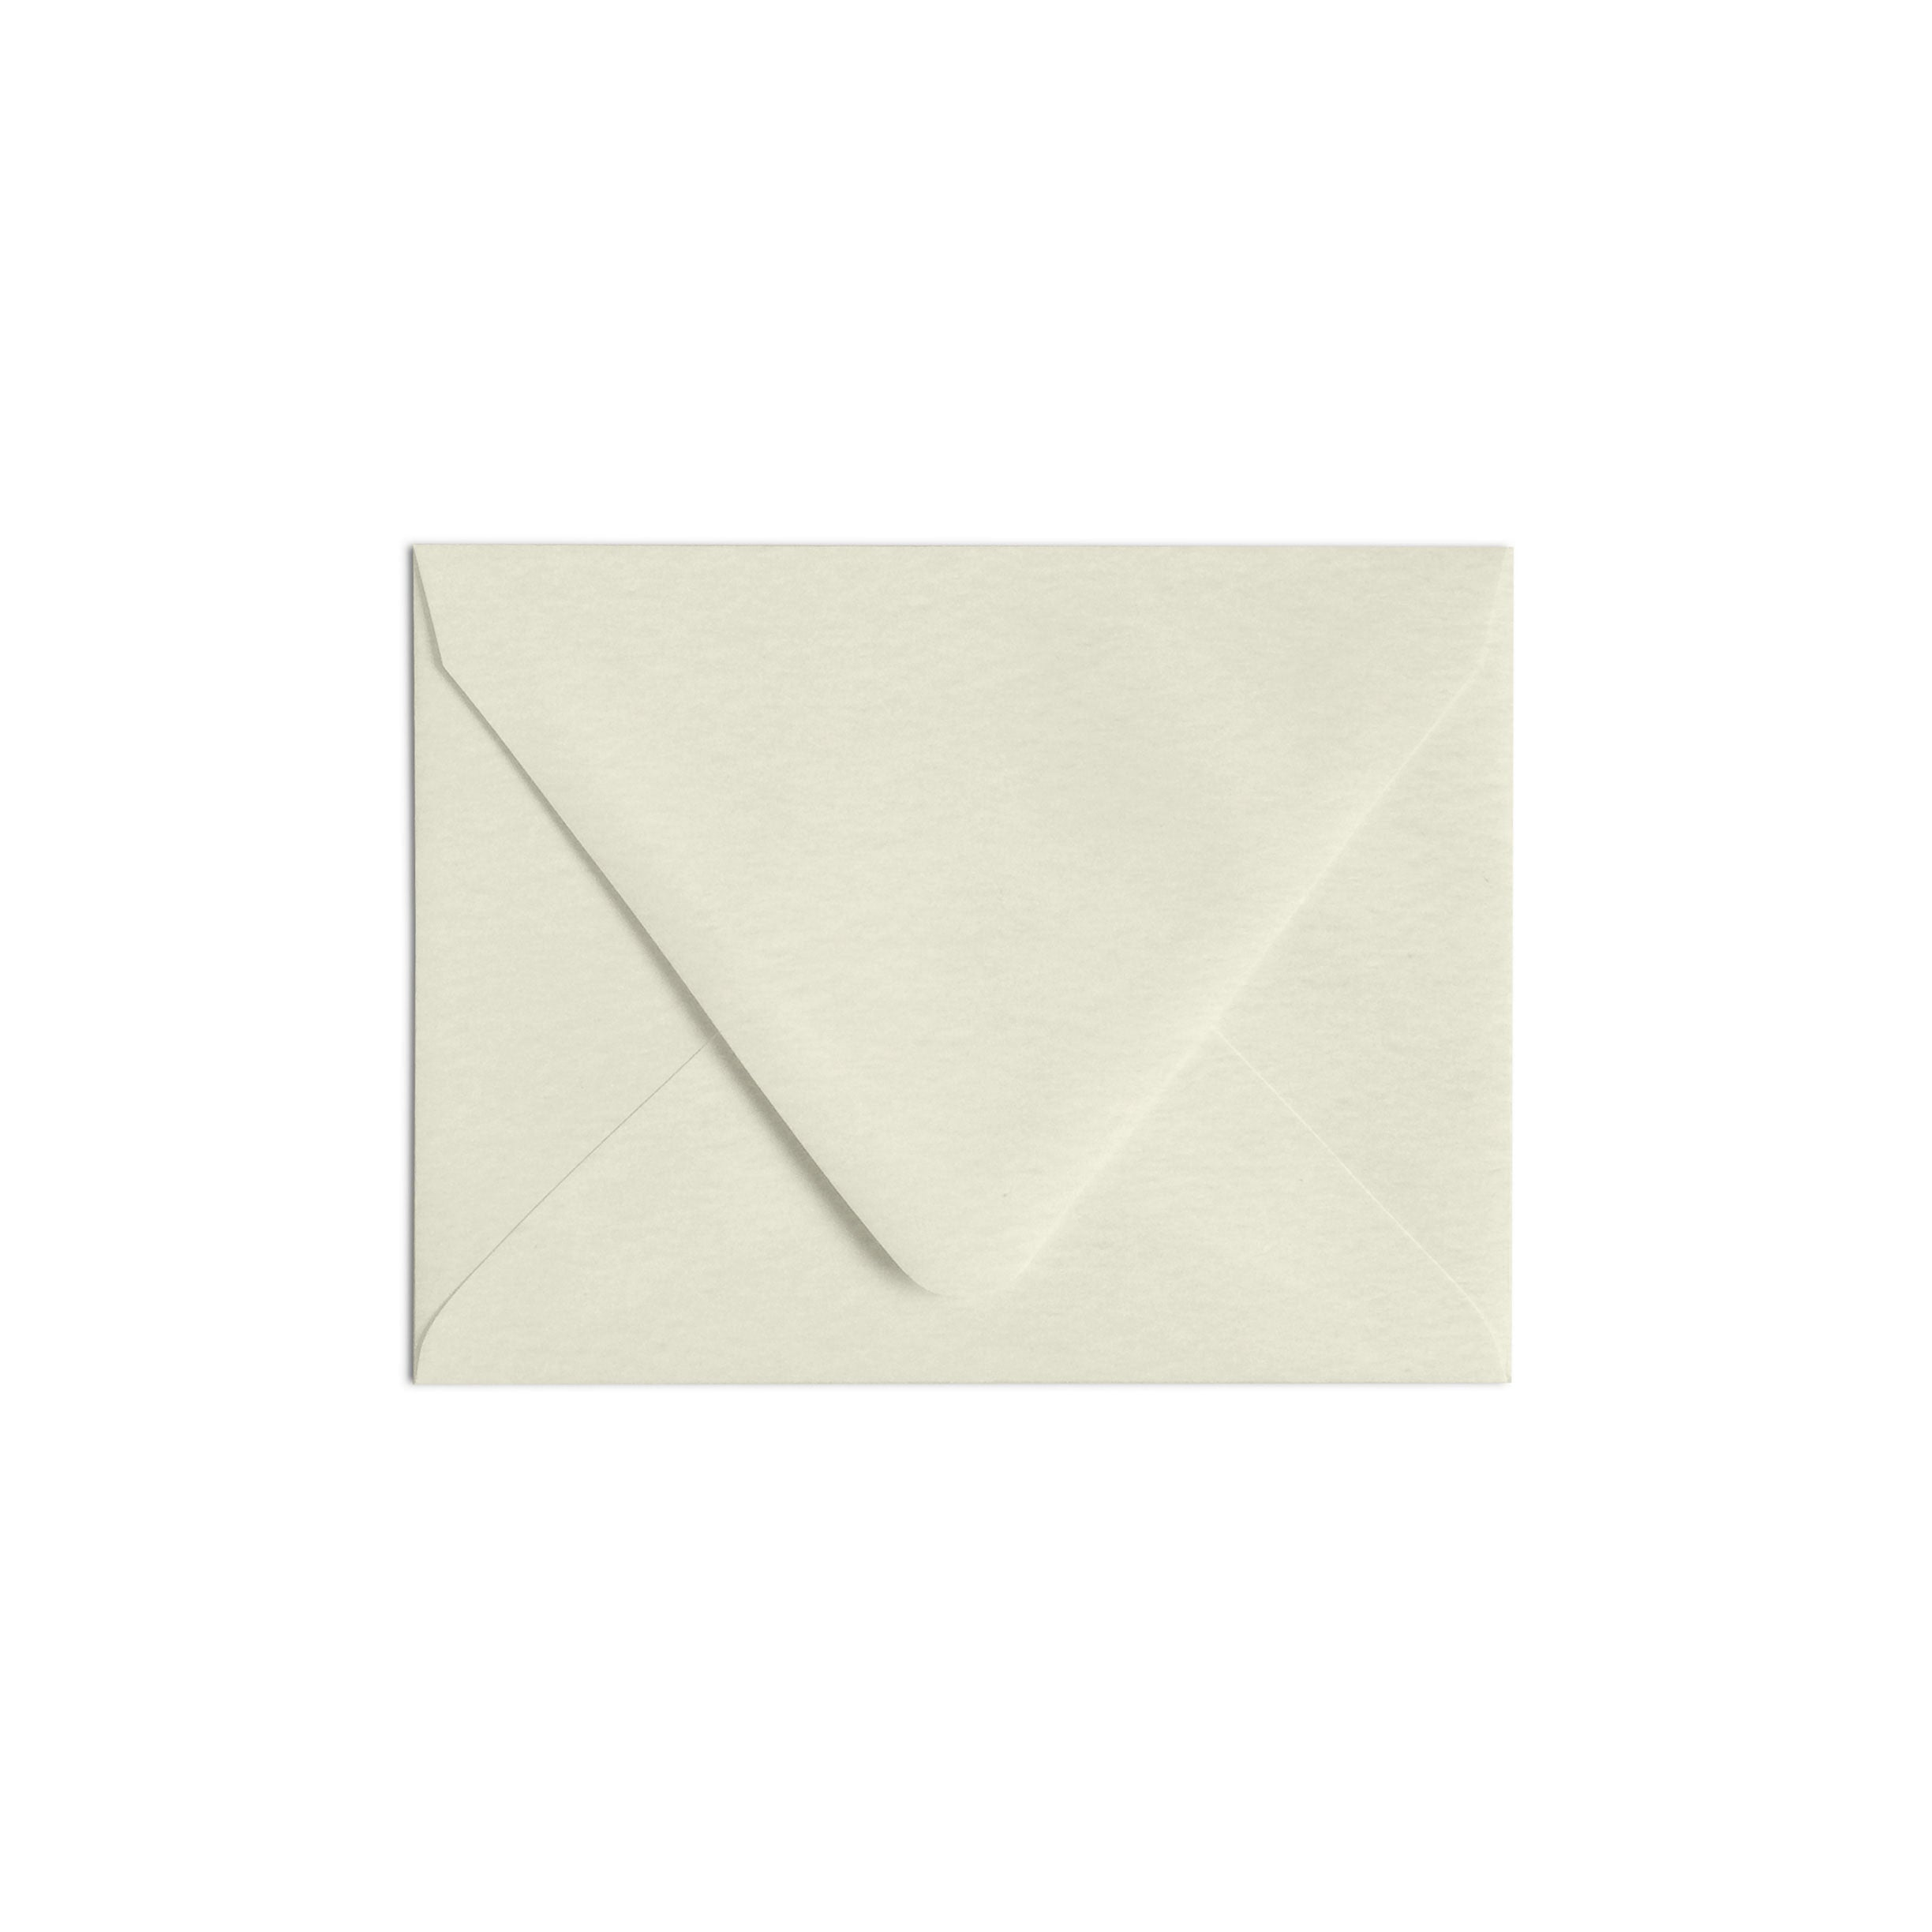 A2 Envelope Luxe Cream